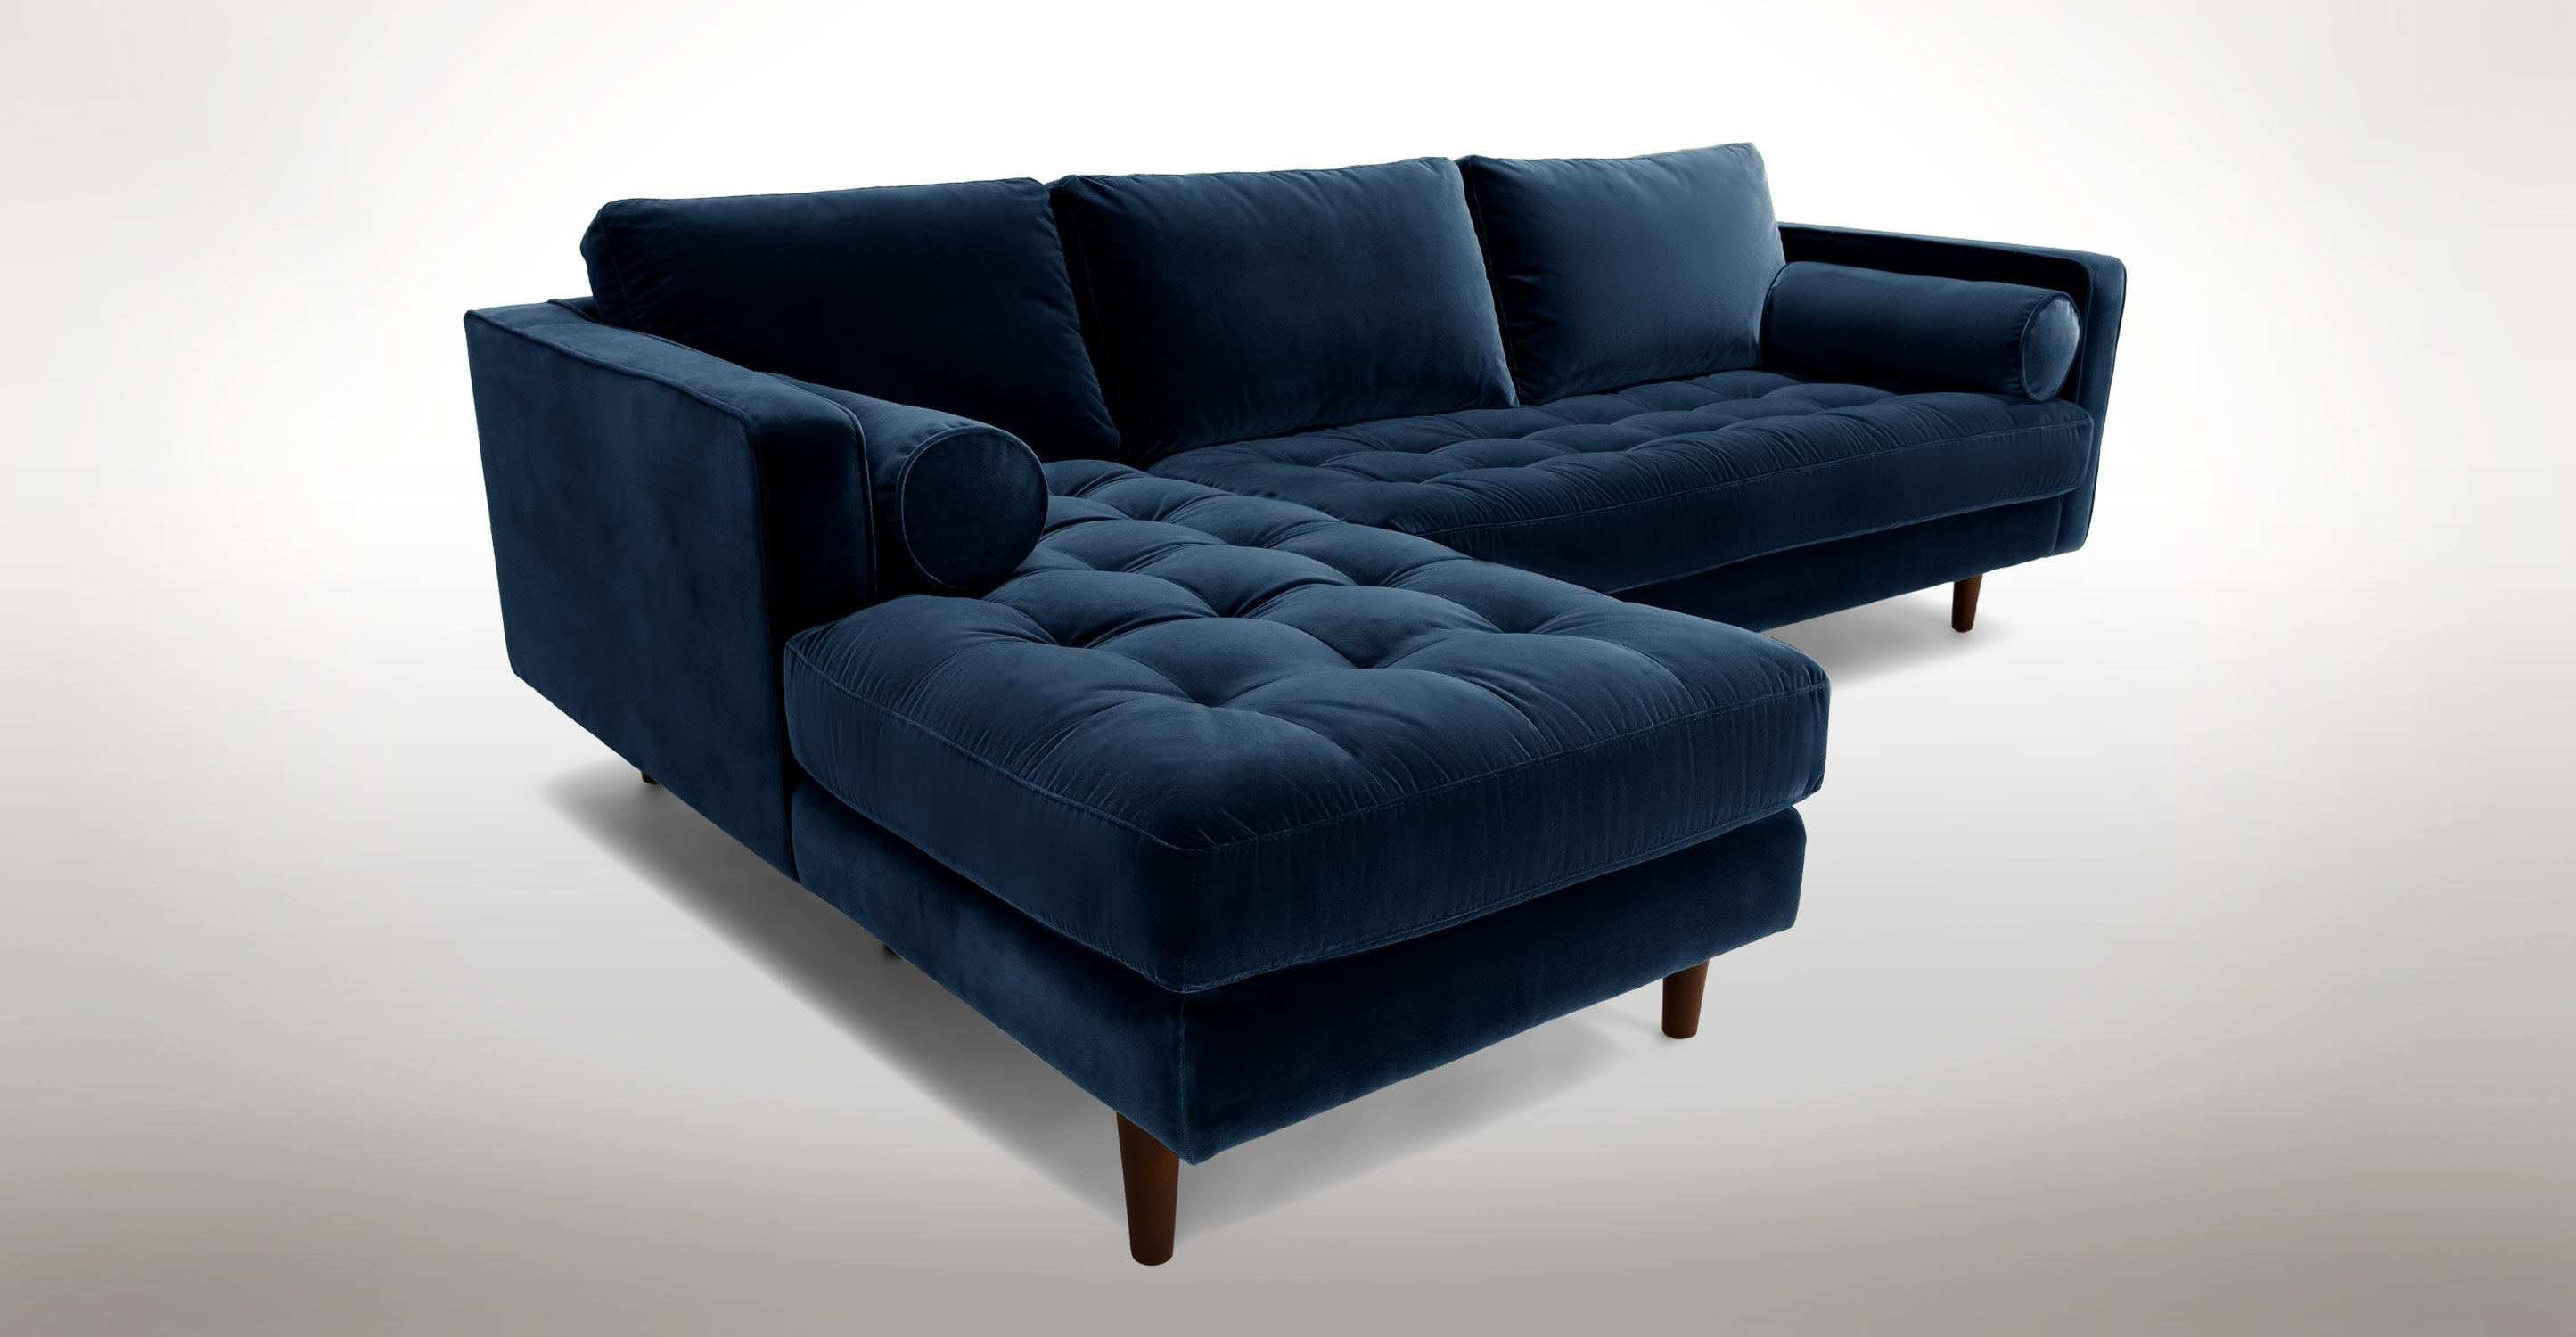 martello sofa room sofas leather sectional sectionals blue furniture for couches sale living